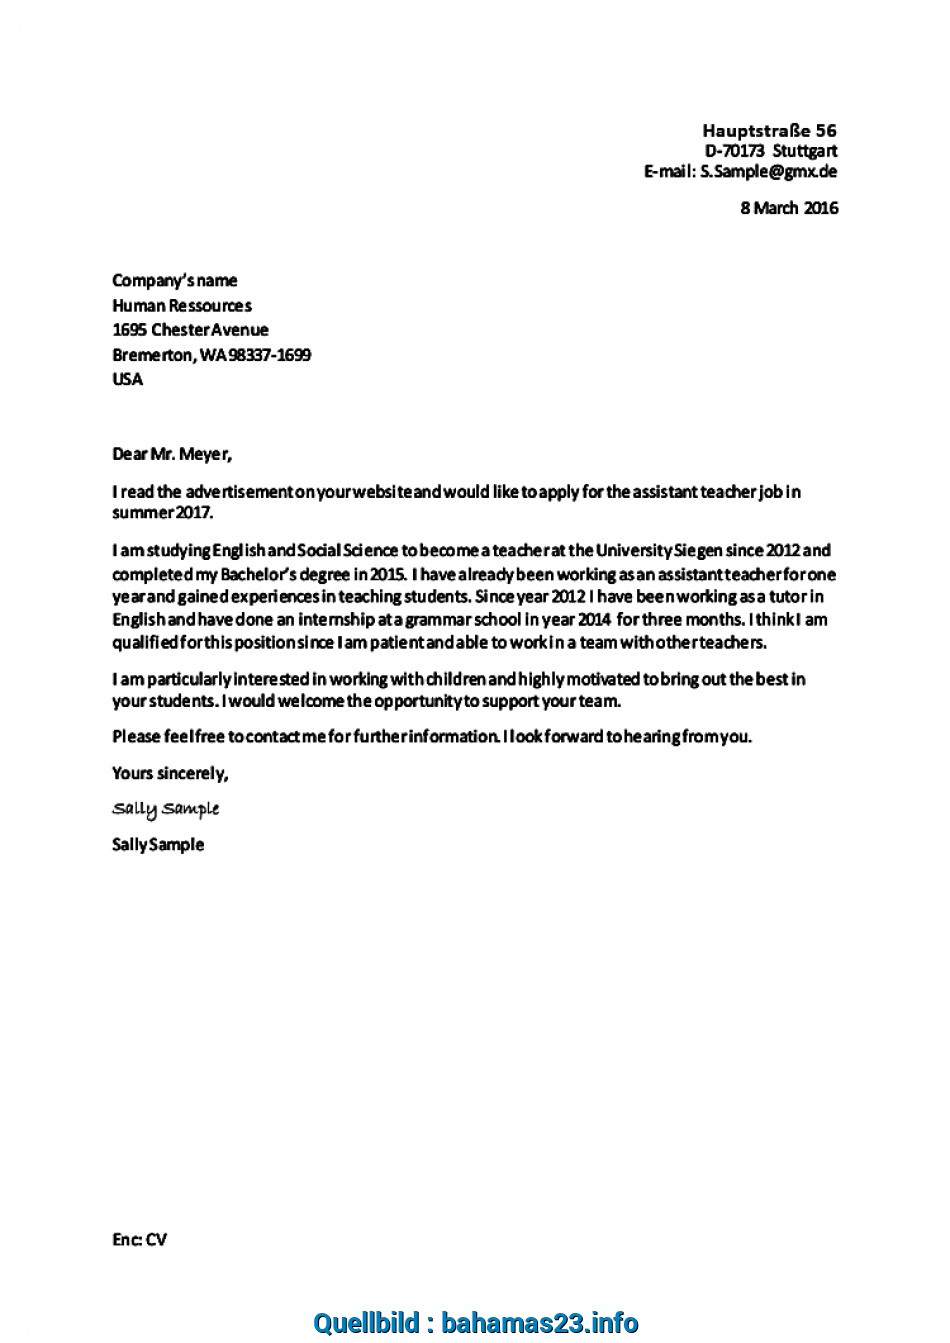 Gut Bewerbung Schreiben Letter Of Application With Example